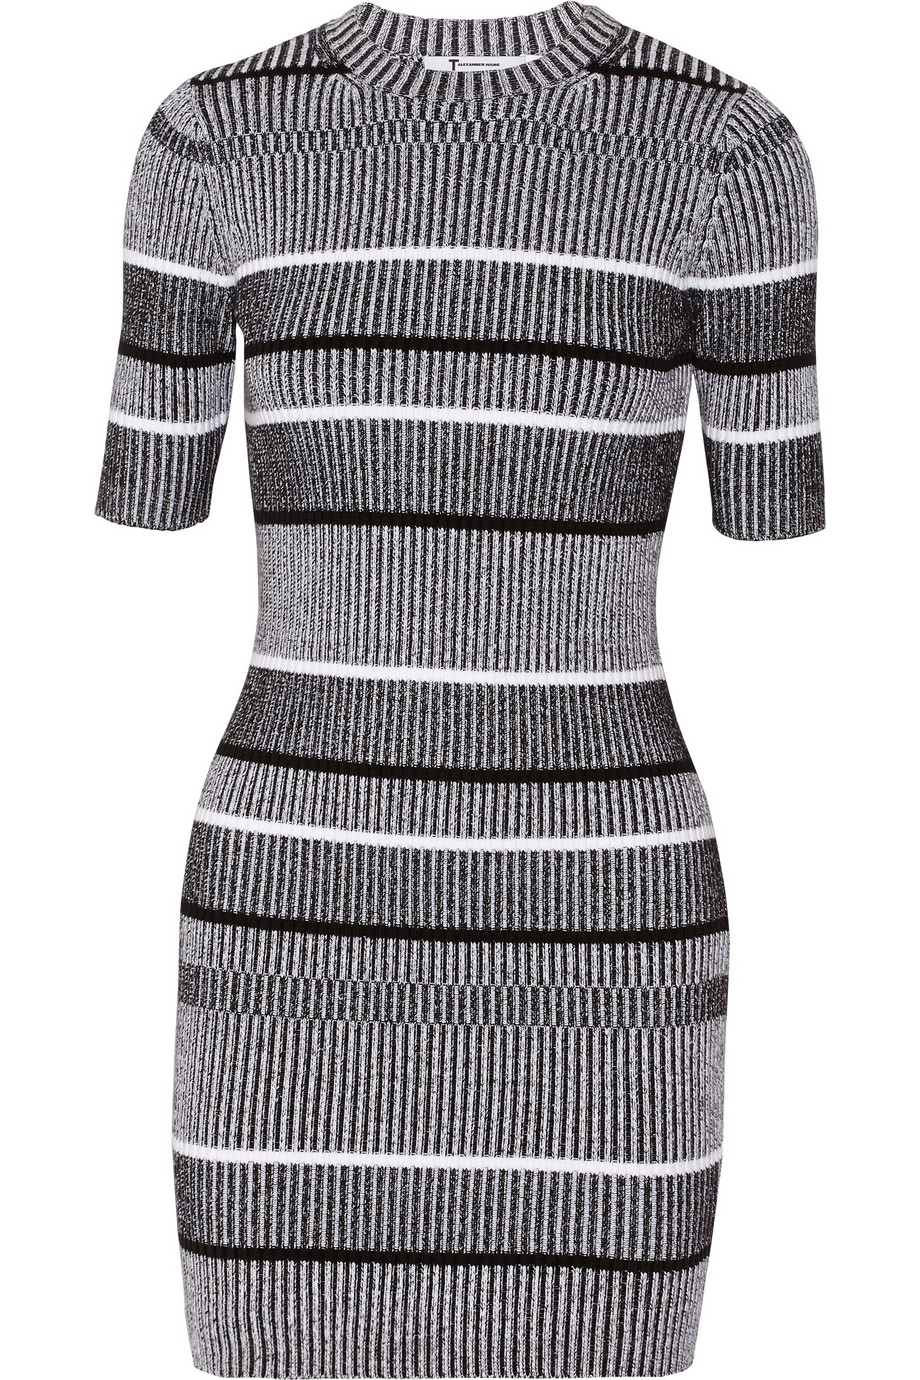 18044b23d6 T by Alexander Wang Ribbed-knit cotton-blend mini dress – 50% at THE  OUTNET.COM